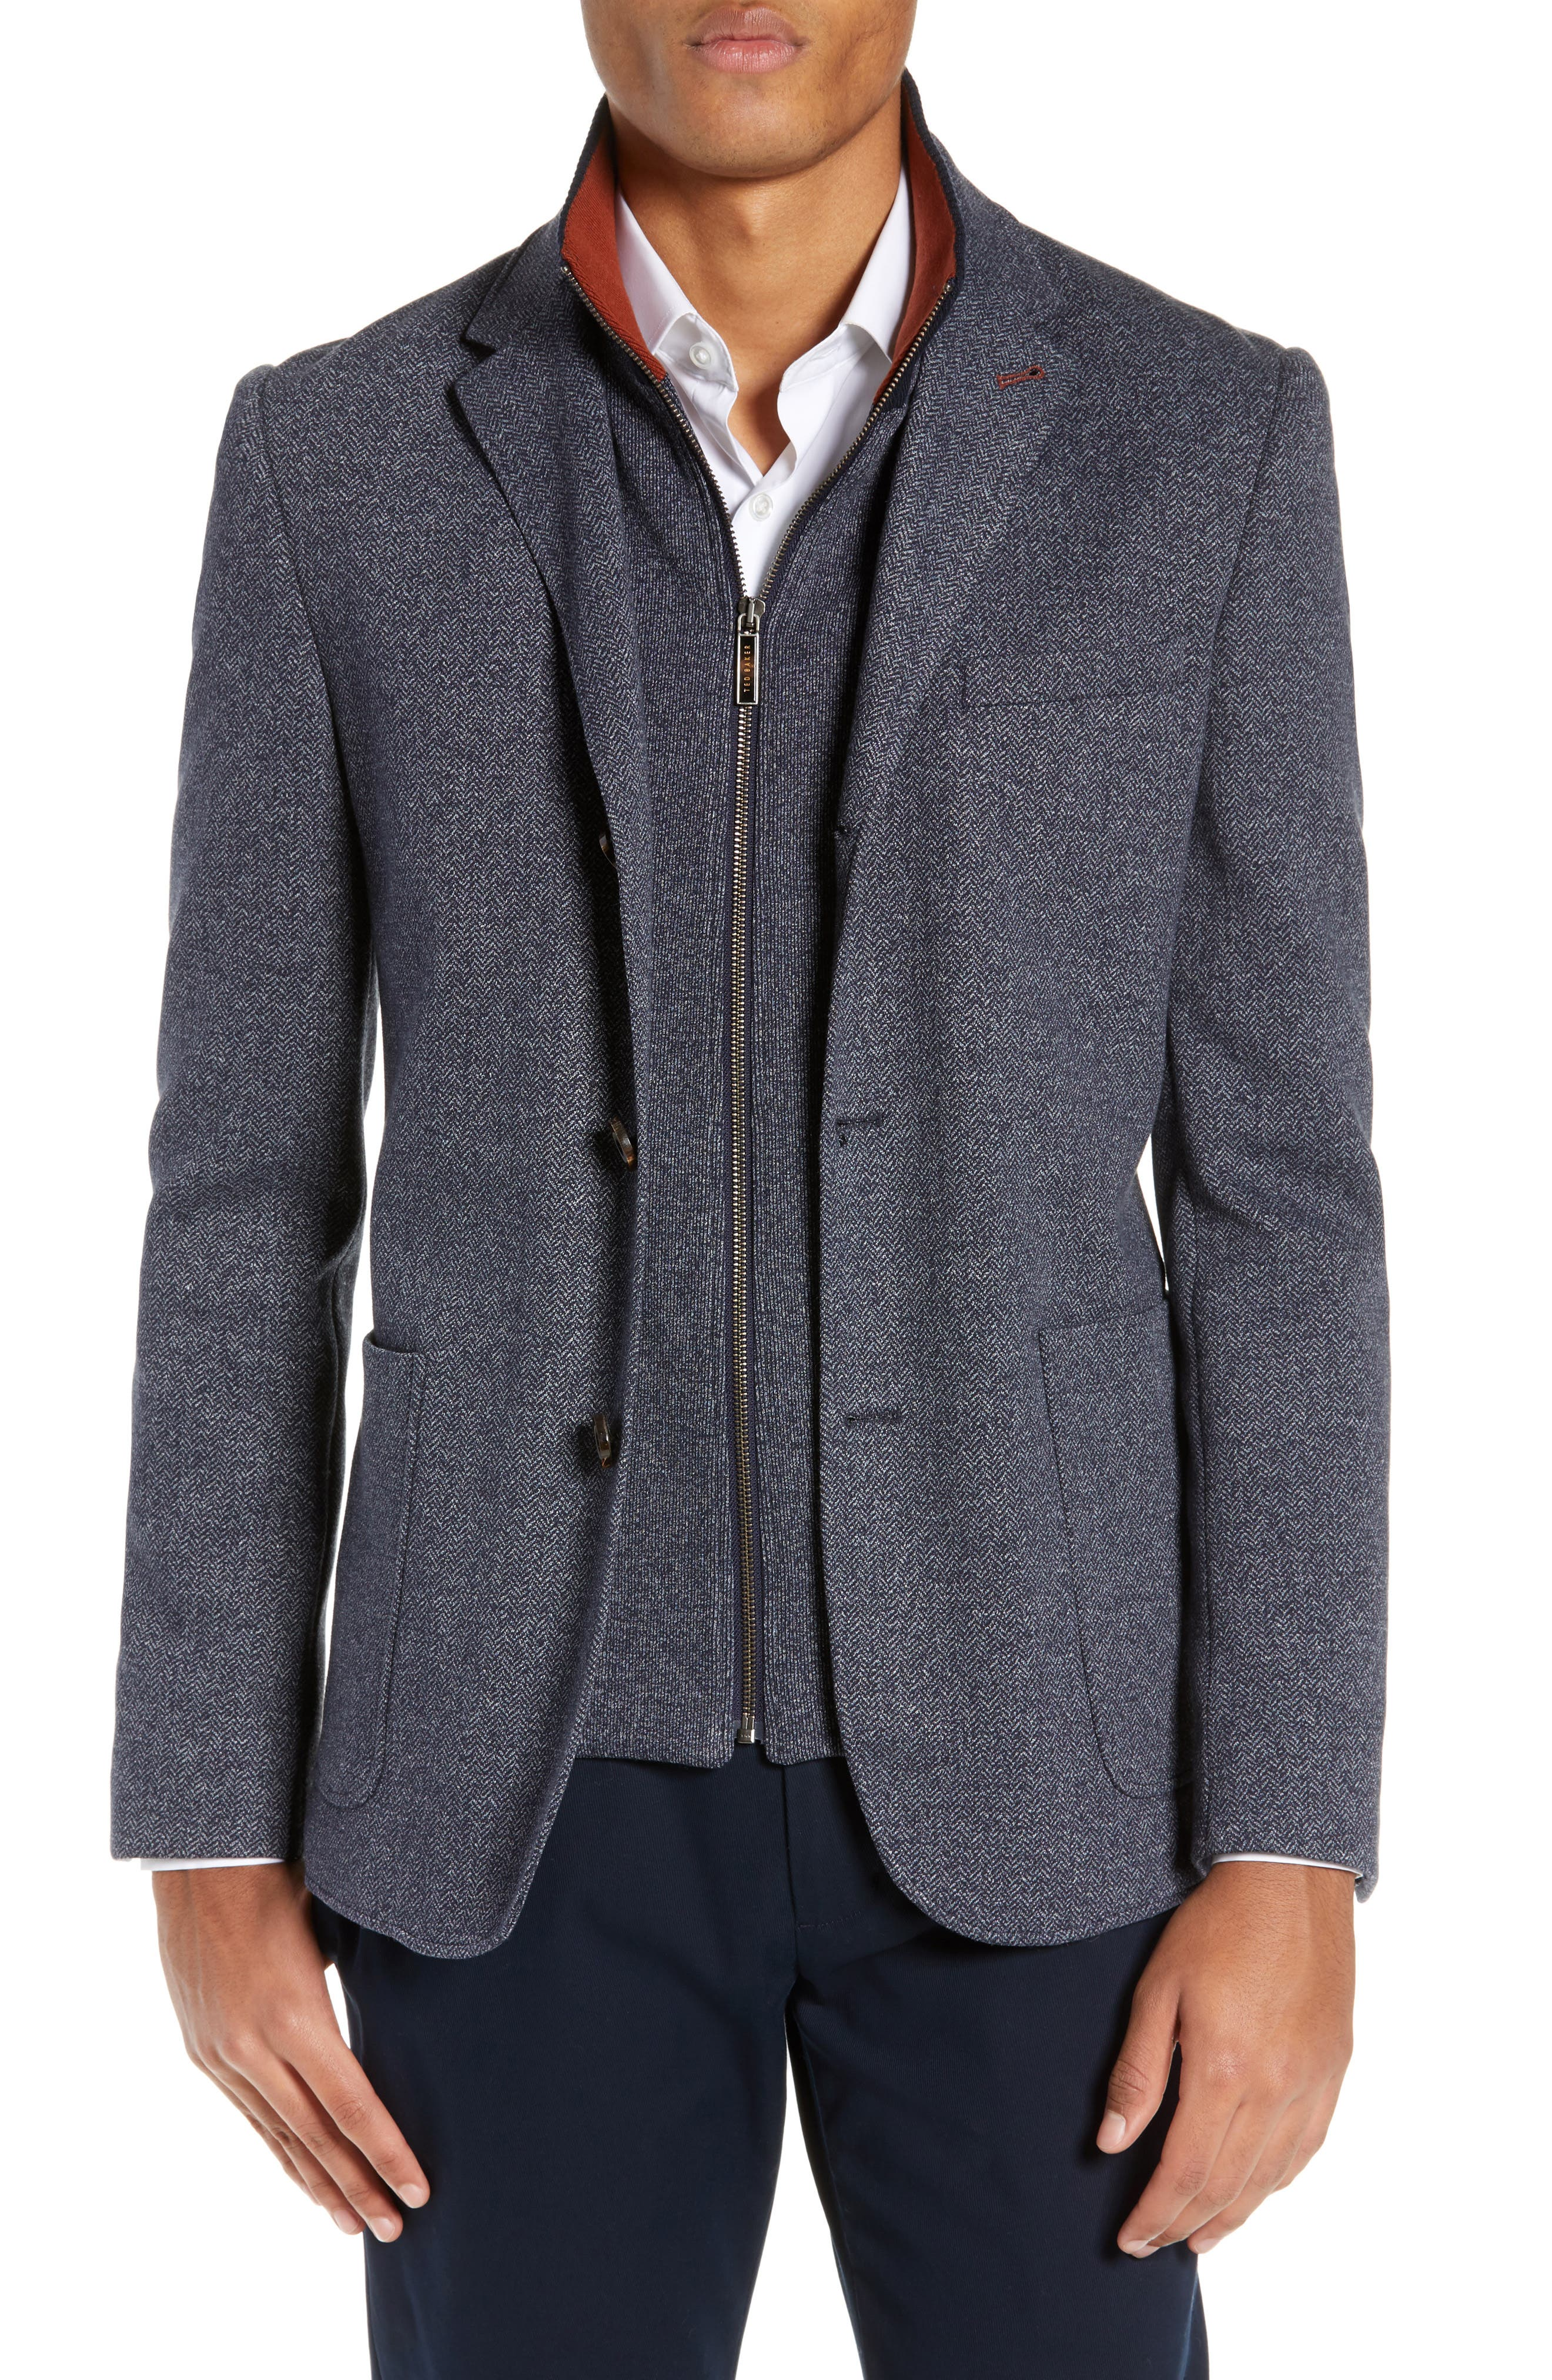 TED BAKER LONDON, Cole Layered Look Herringbone Jacket, Main thumbnail 1, color, BLUE